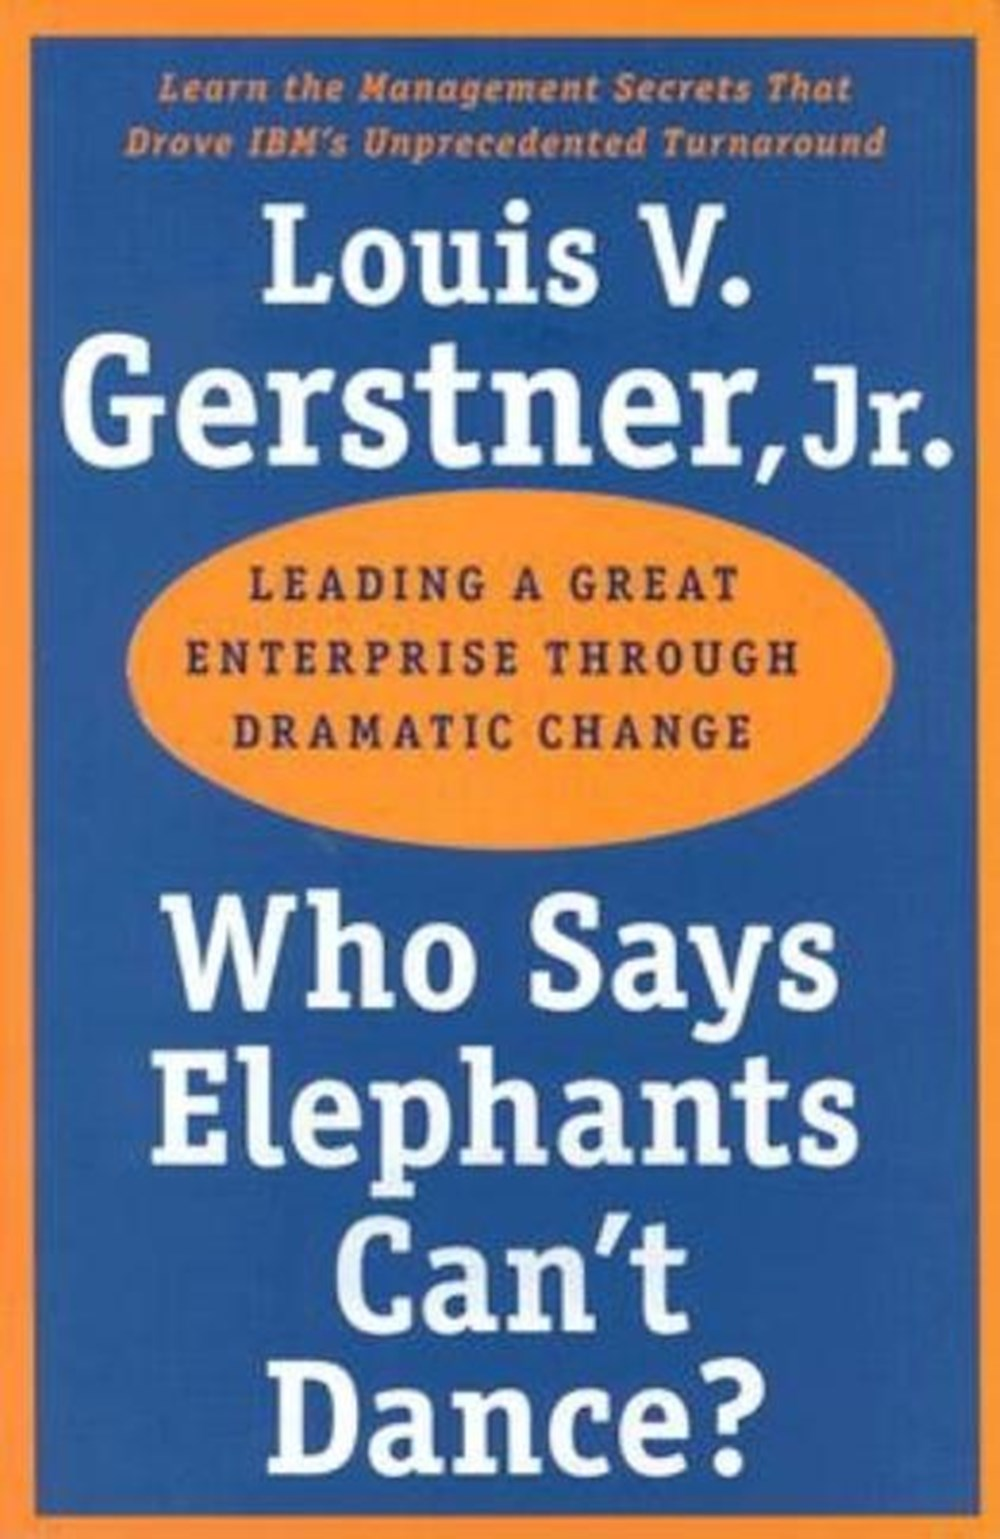 Who Says Elephants Can't Dance? Leading a Great Enterprise Through Dramatic Change